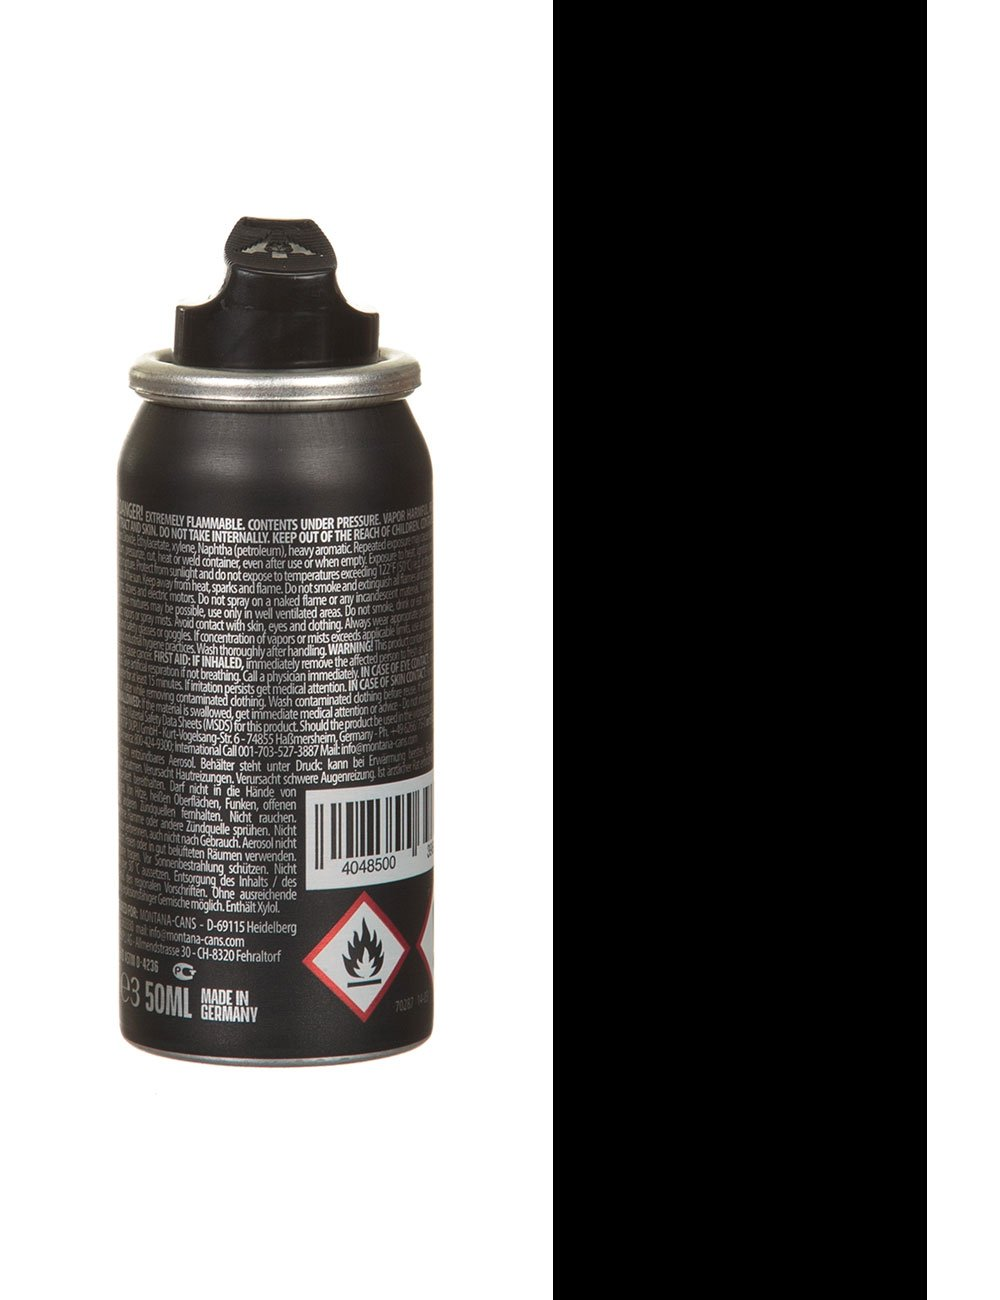 Montana black black spray paint 50ml spray paint supplies from iconsume uk Black spray paint